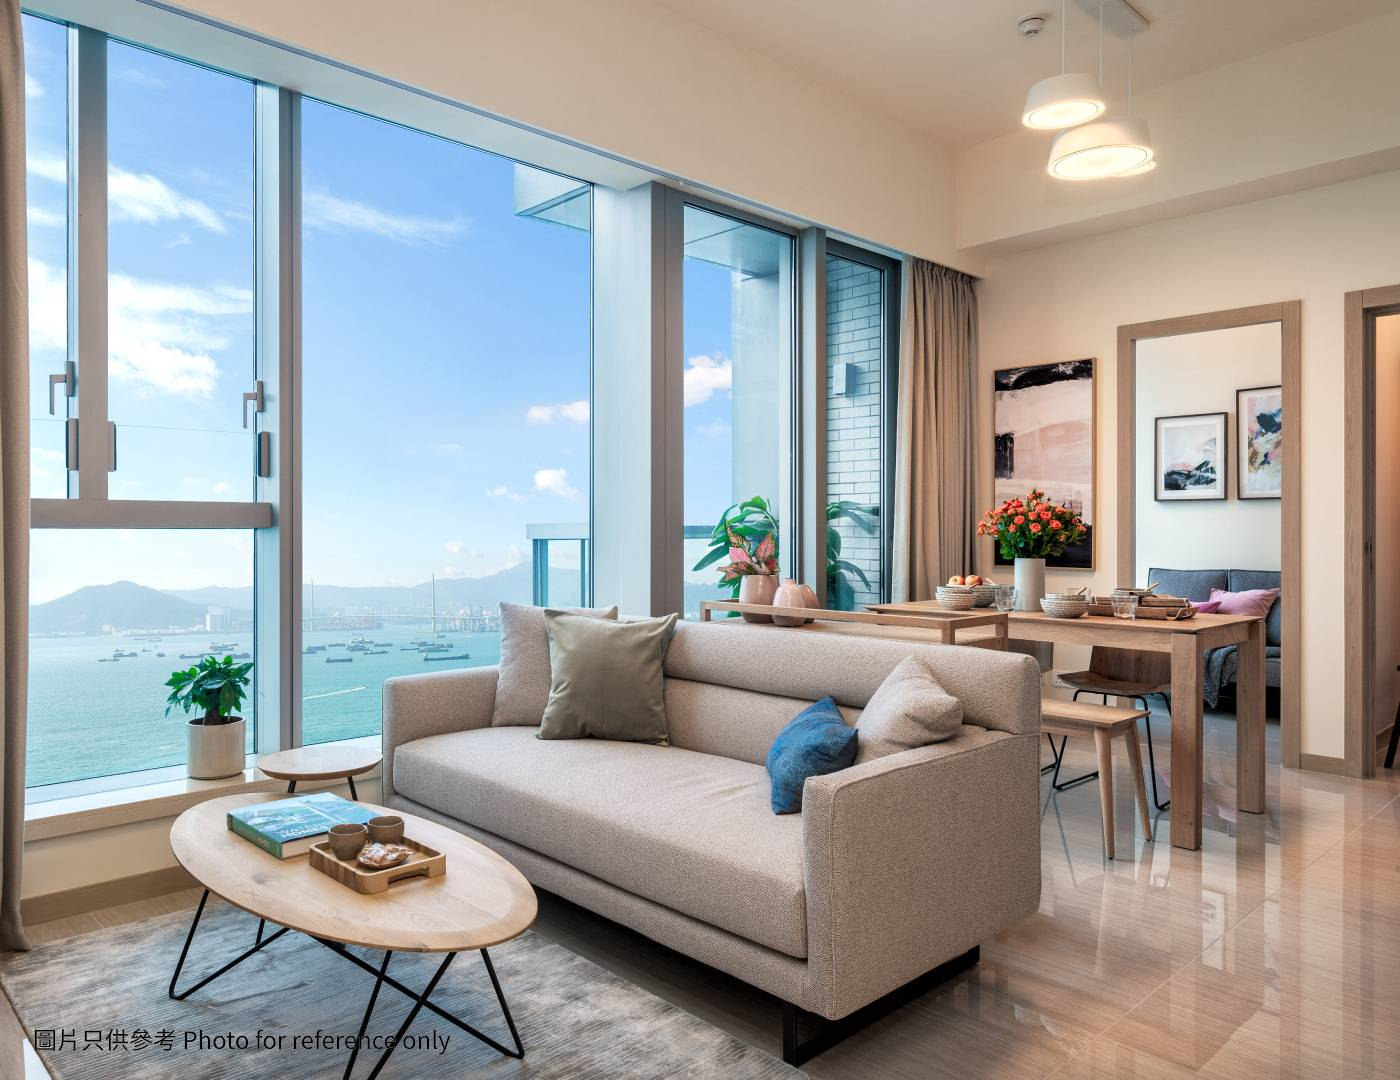 townplace-kennedy-town-serviced-apartment